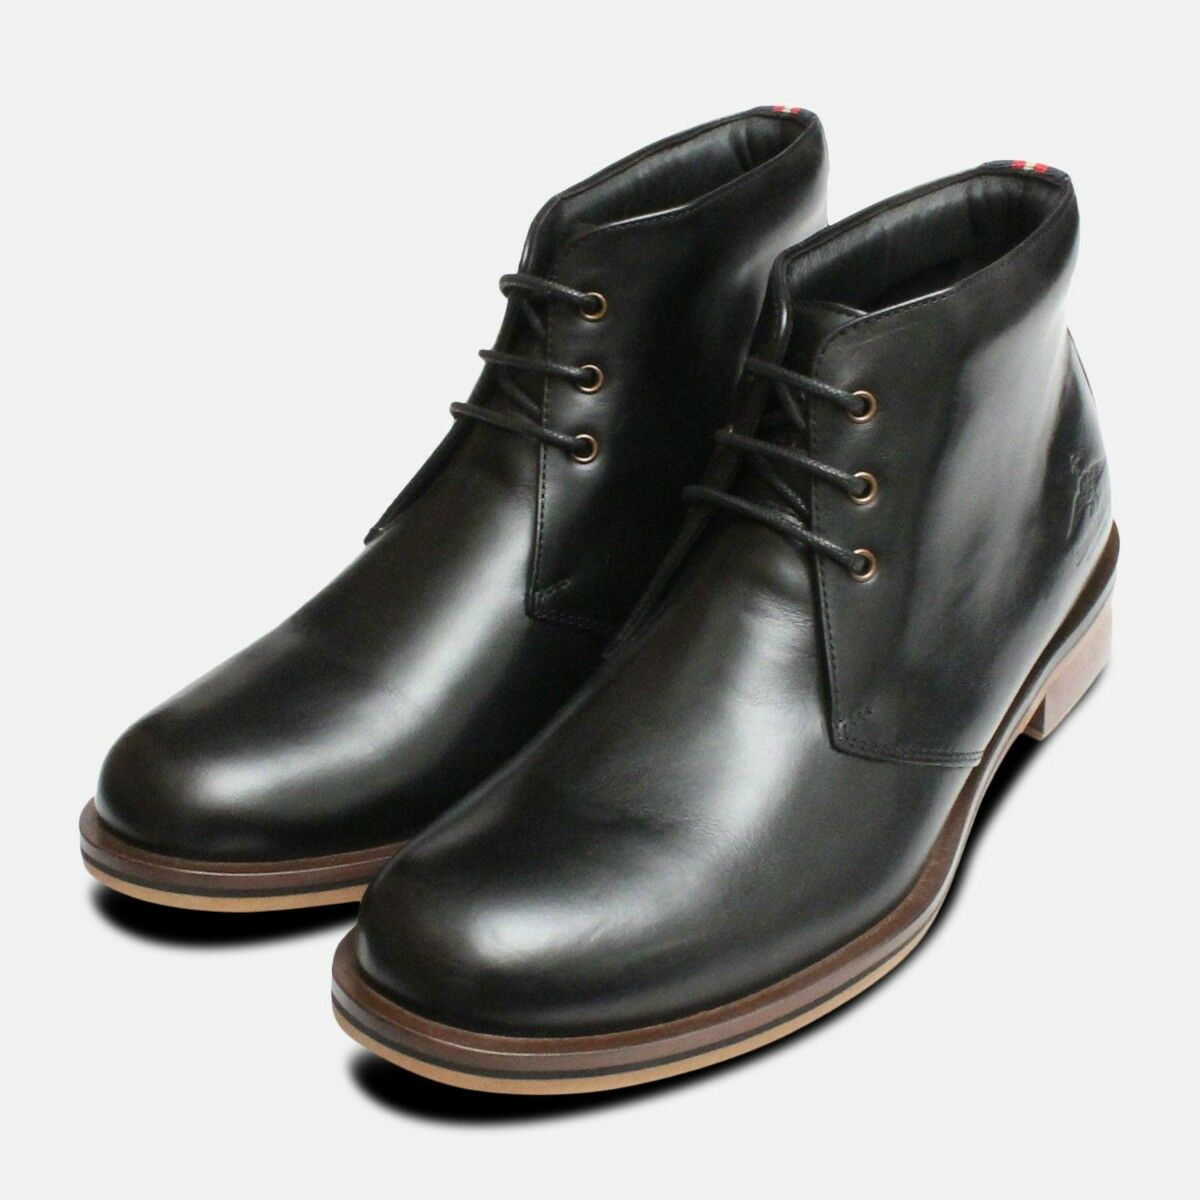 Thomas Partridge Digby Boots in Black Leather